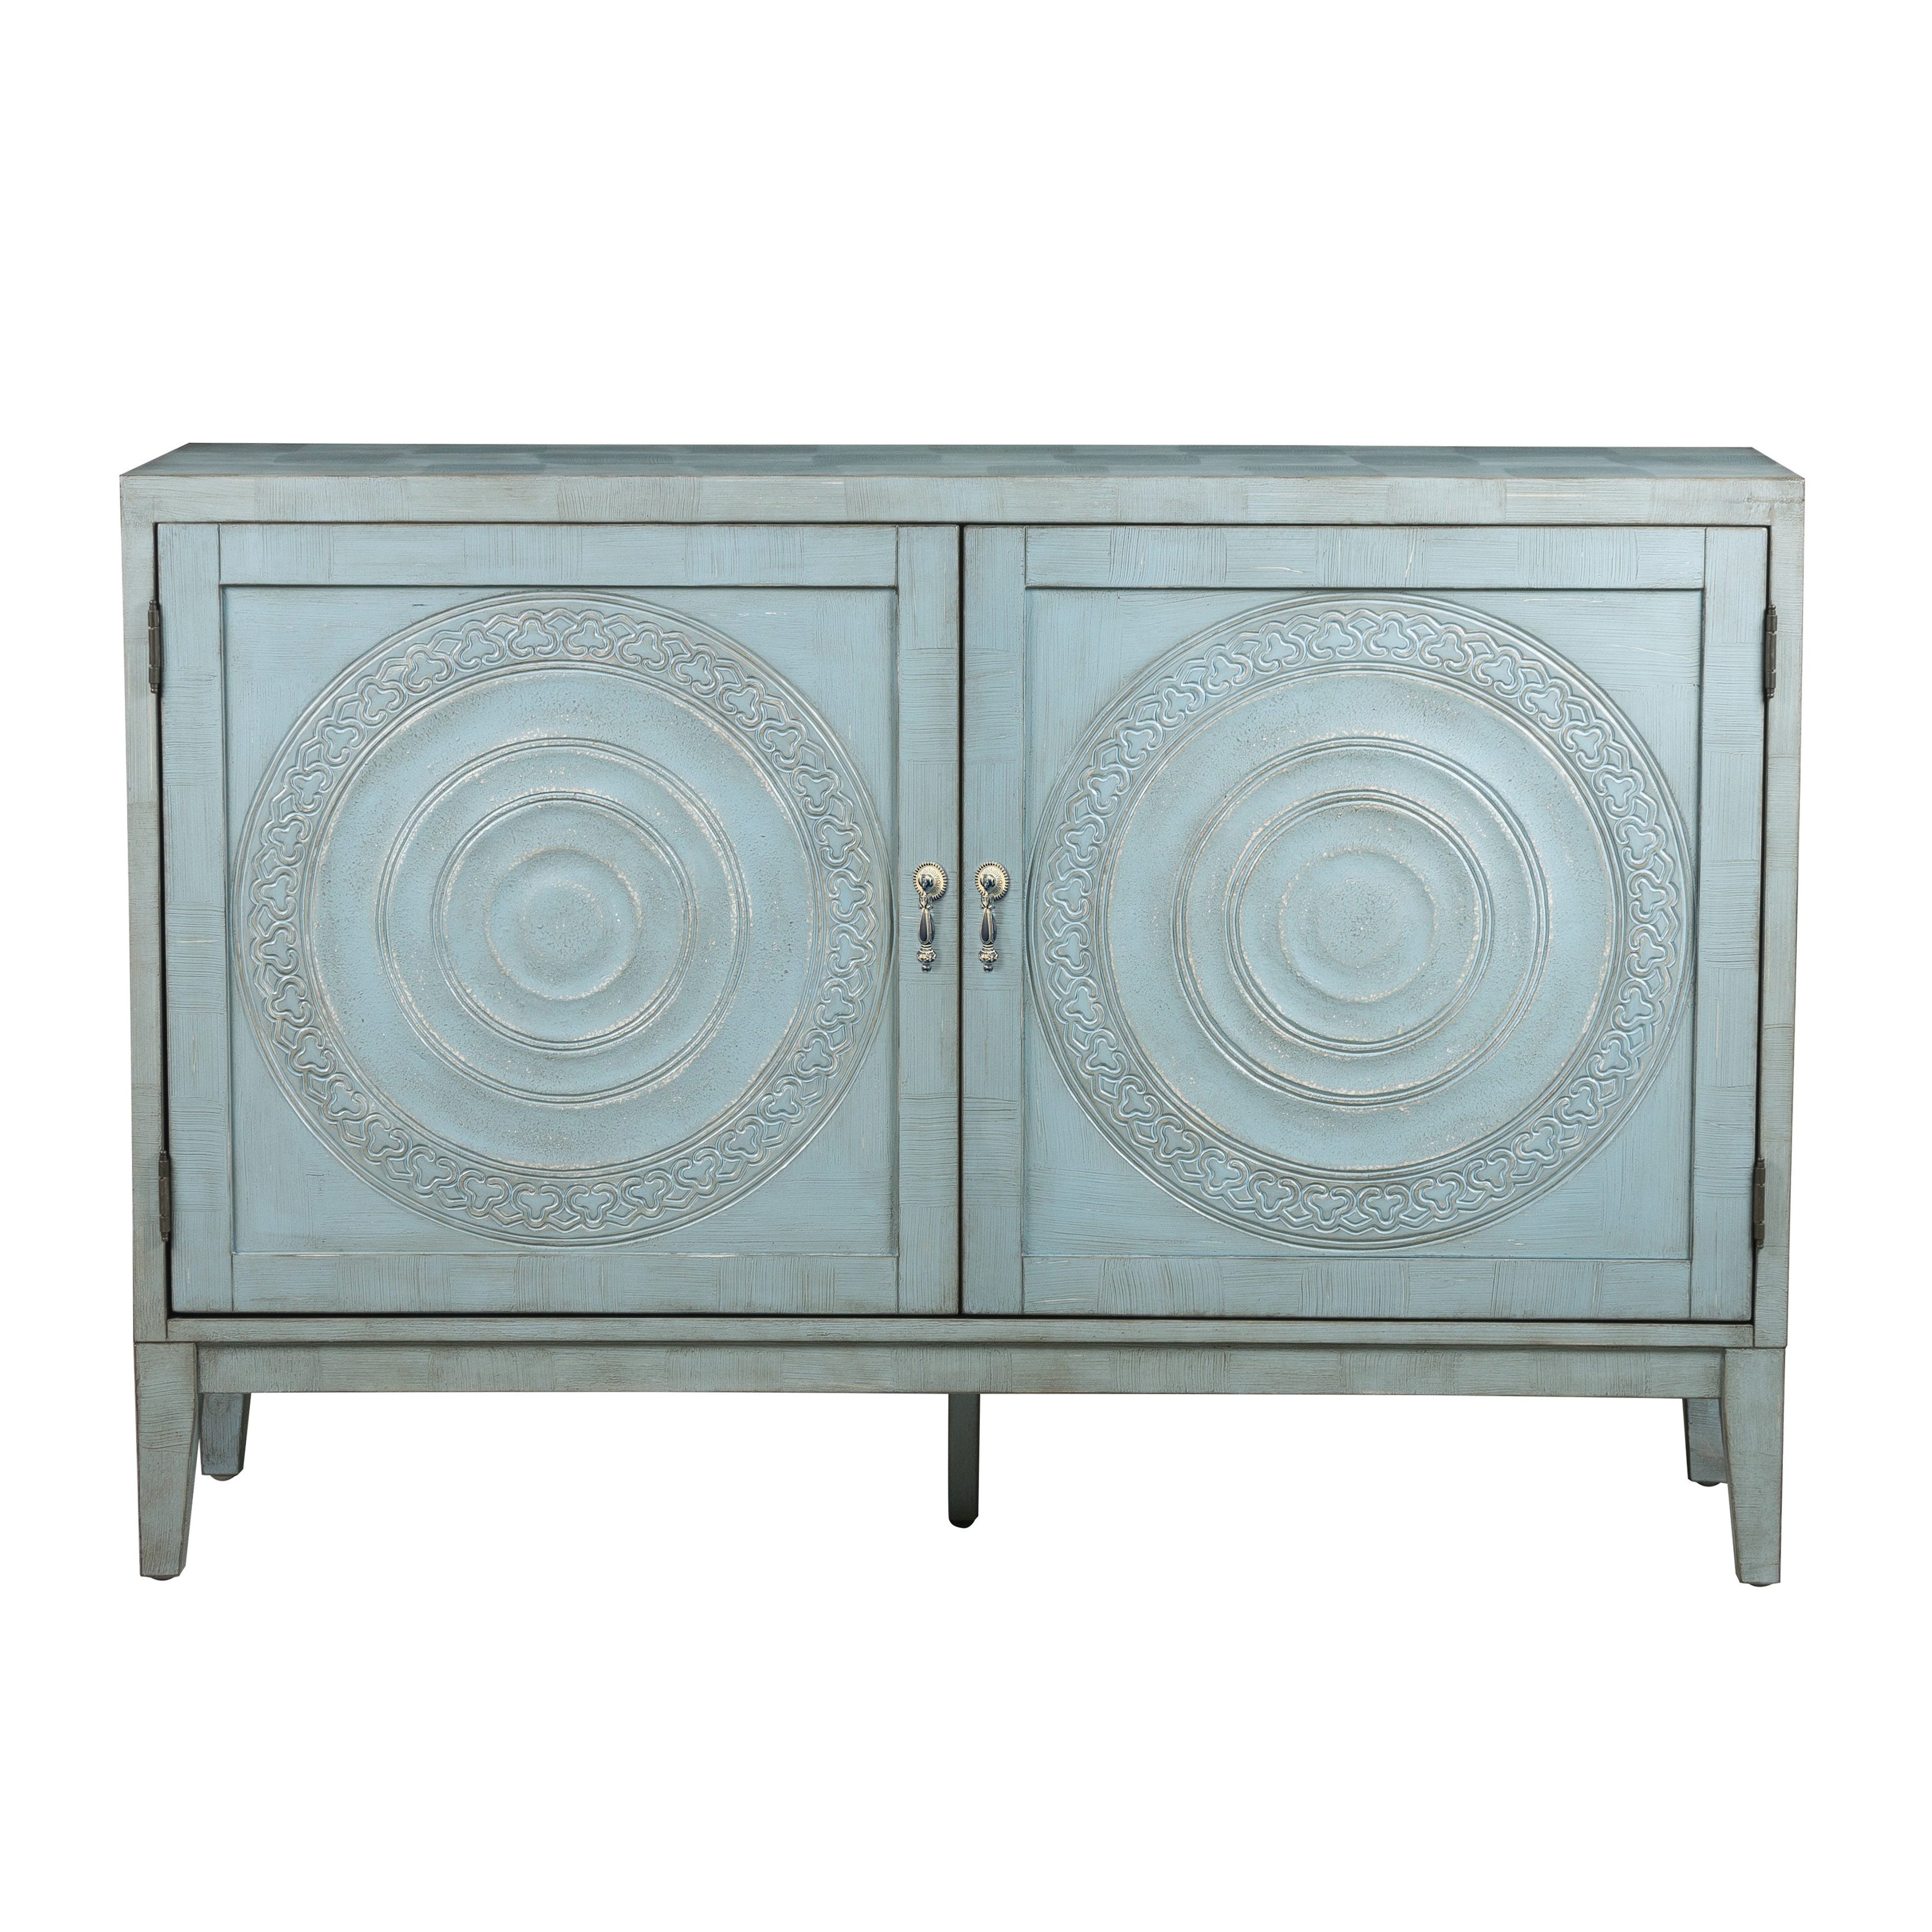 Briane Antique Blue Embossed Credenza Console Regarding Blue Stained Glass Credenzas (View 2 of 20)